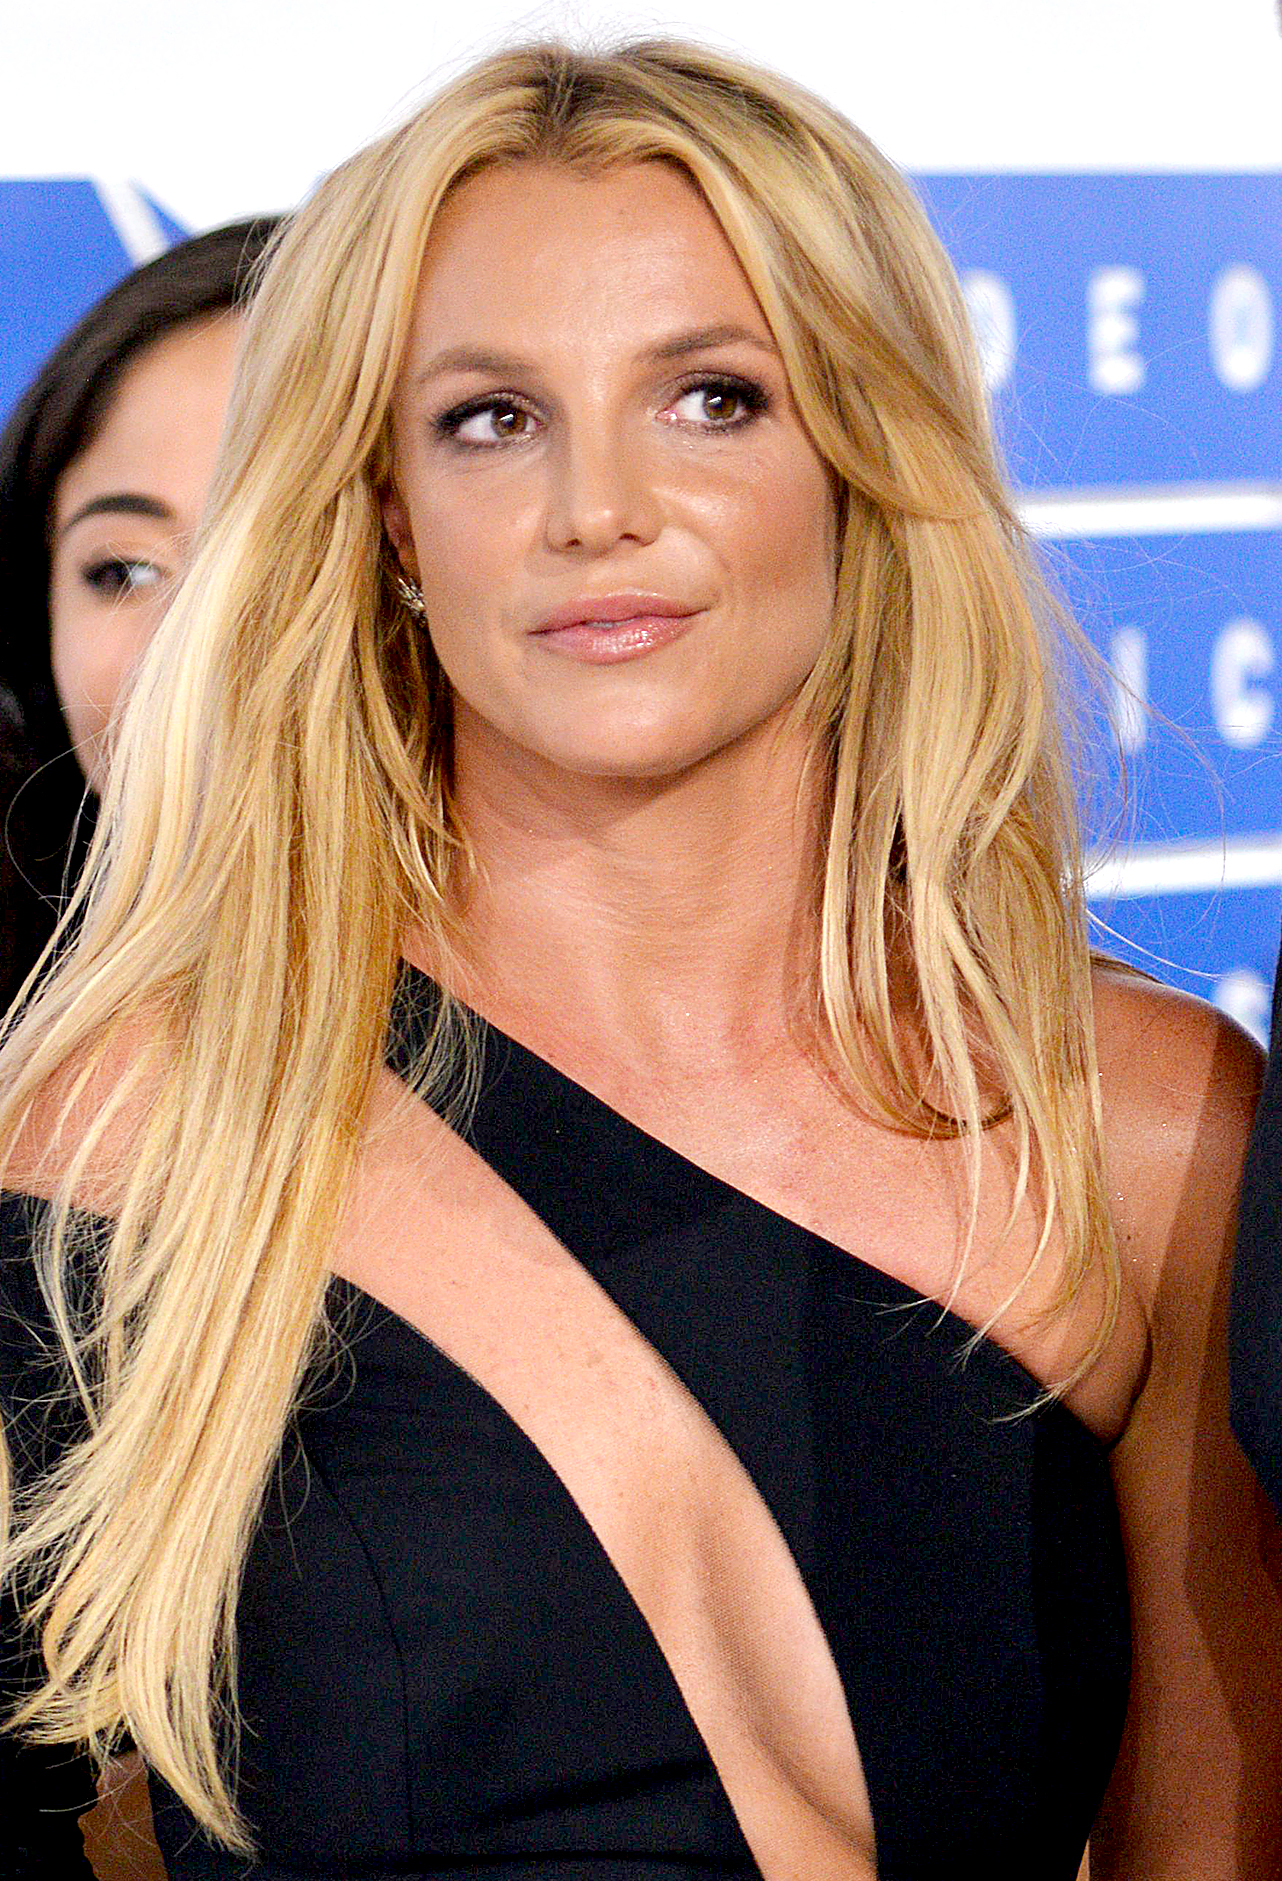 Britney-Spears-Is-'Angry'-That-She-Has-Less-Time-With-Sons-After-Custody-Change